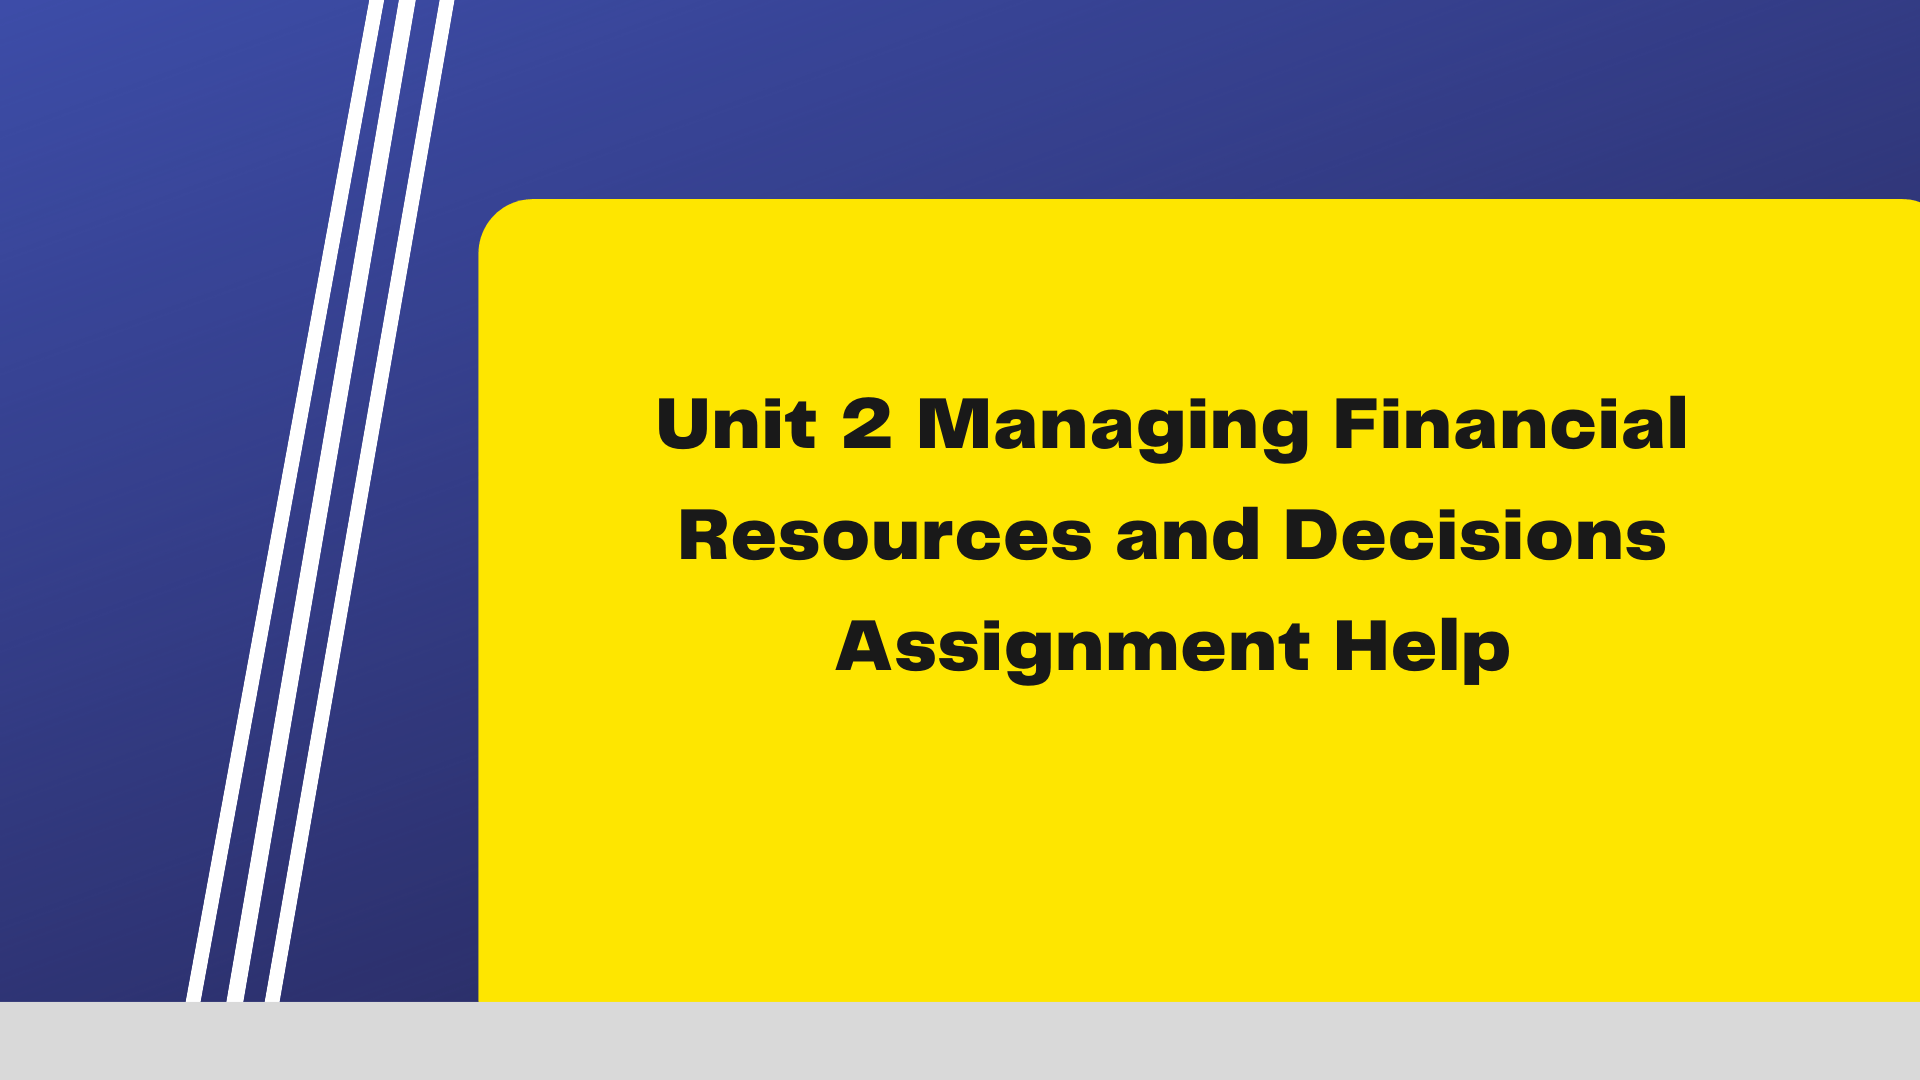 Unit 2 Managing Financial Resources and Decisions Assignment Help